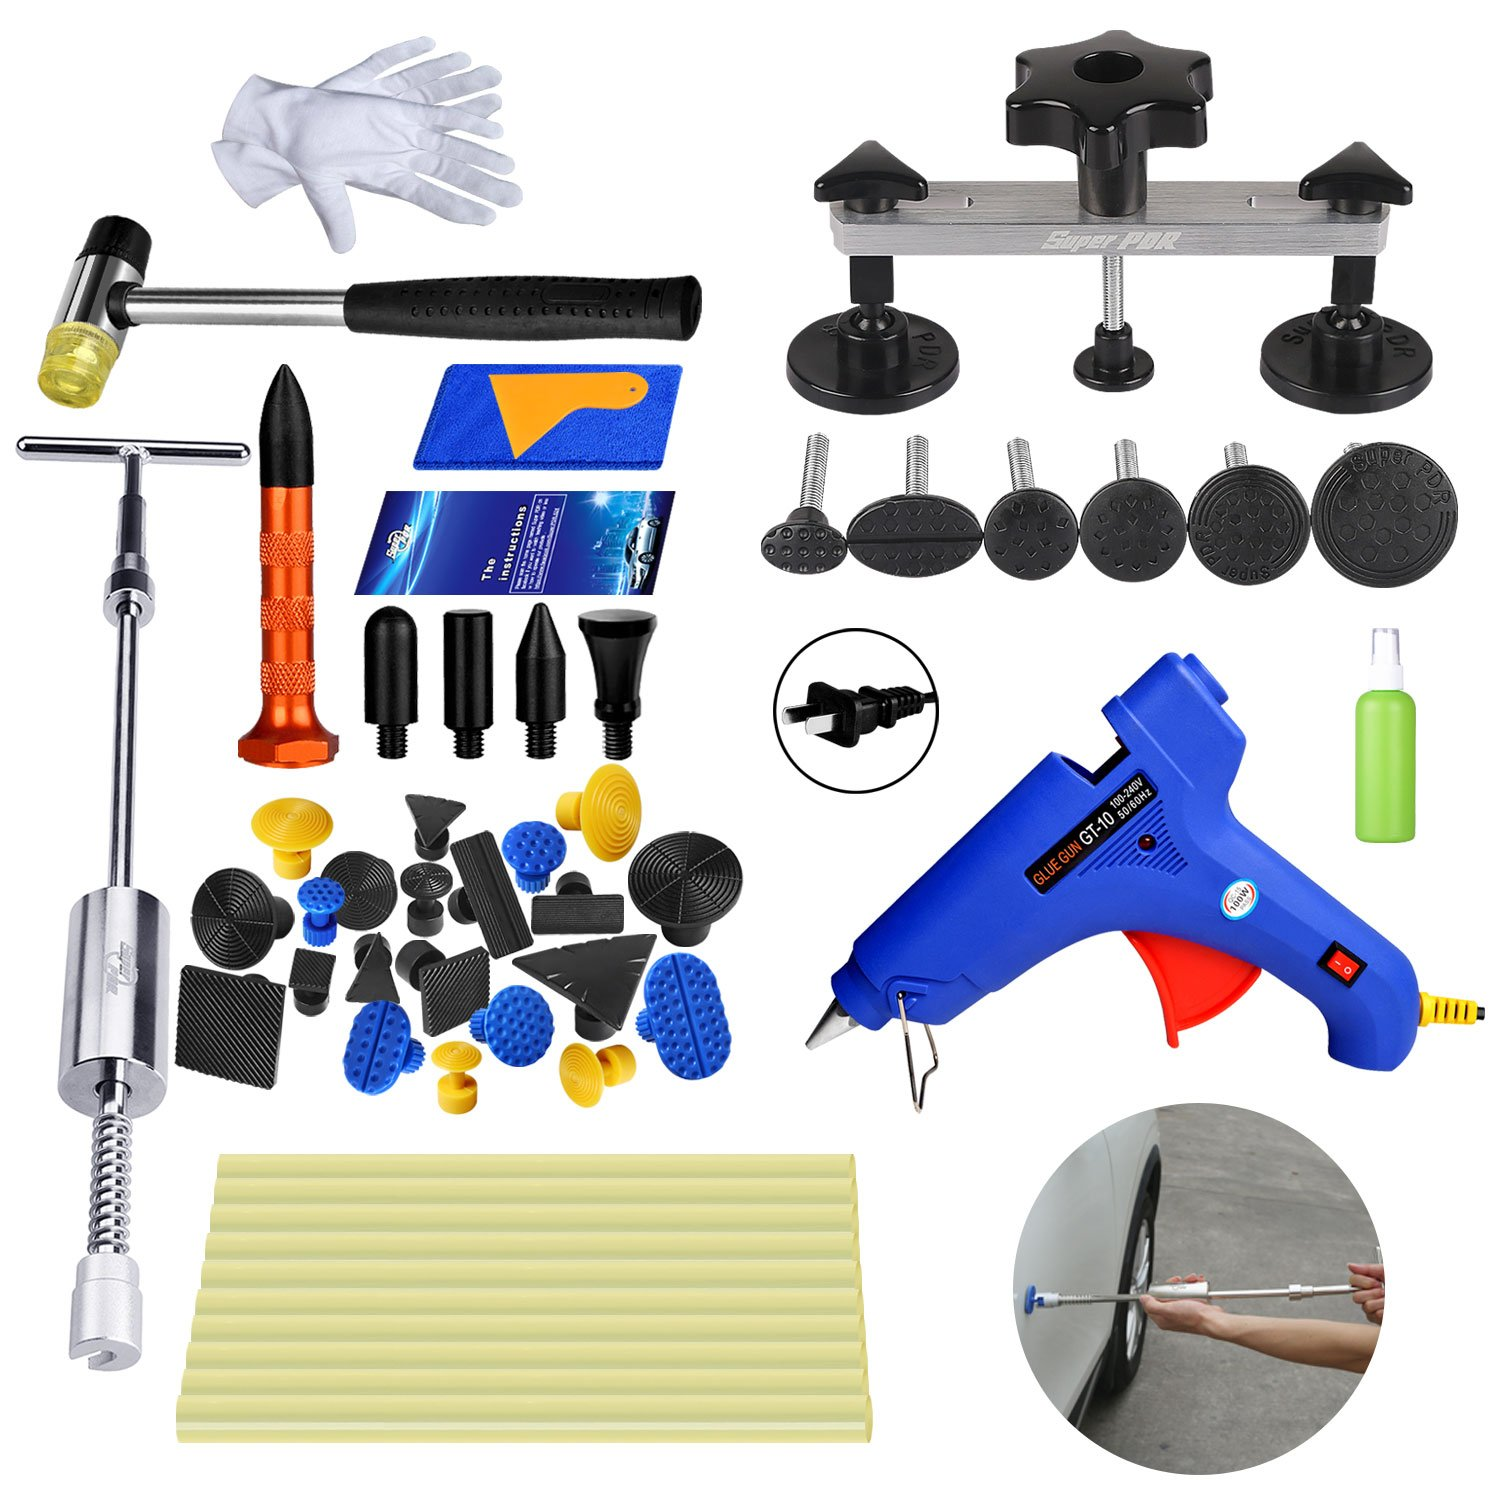 AUTOPDR 48Pcs DIY Auto Body Paintless Dent Repair Removal Remover Tools Kit Dent Puller Slide Hammer Car Door Dent with Hot Glue Gun Sticks Pulling Tabs